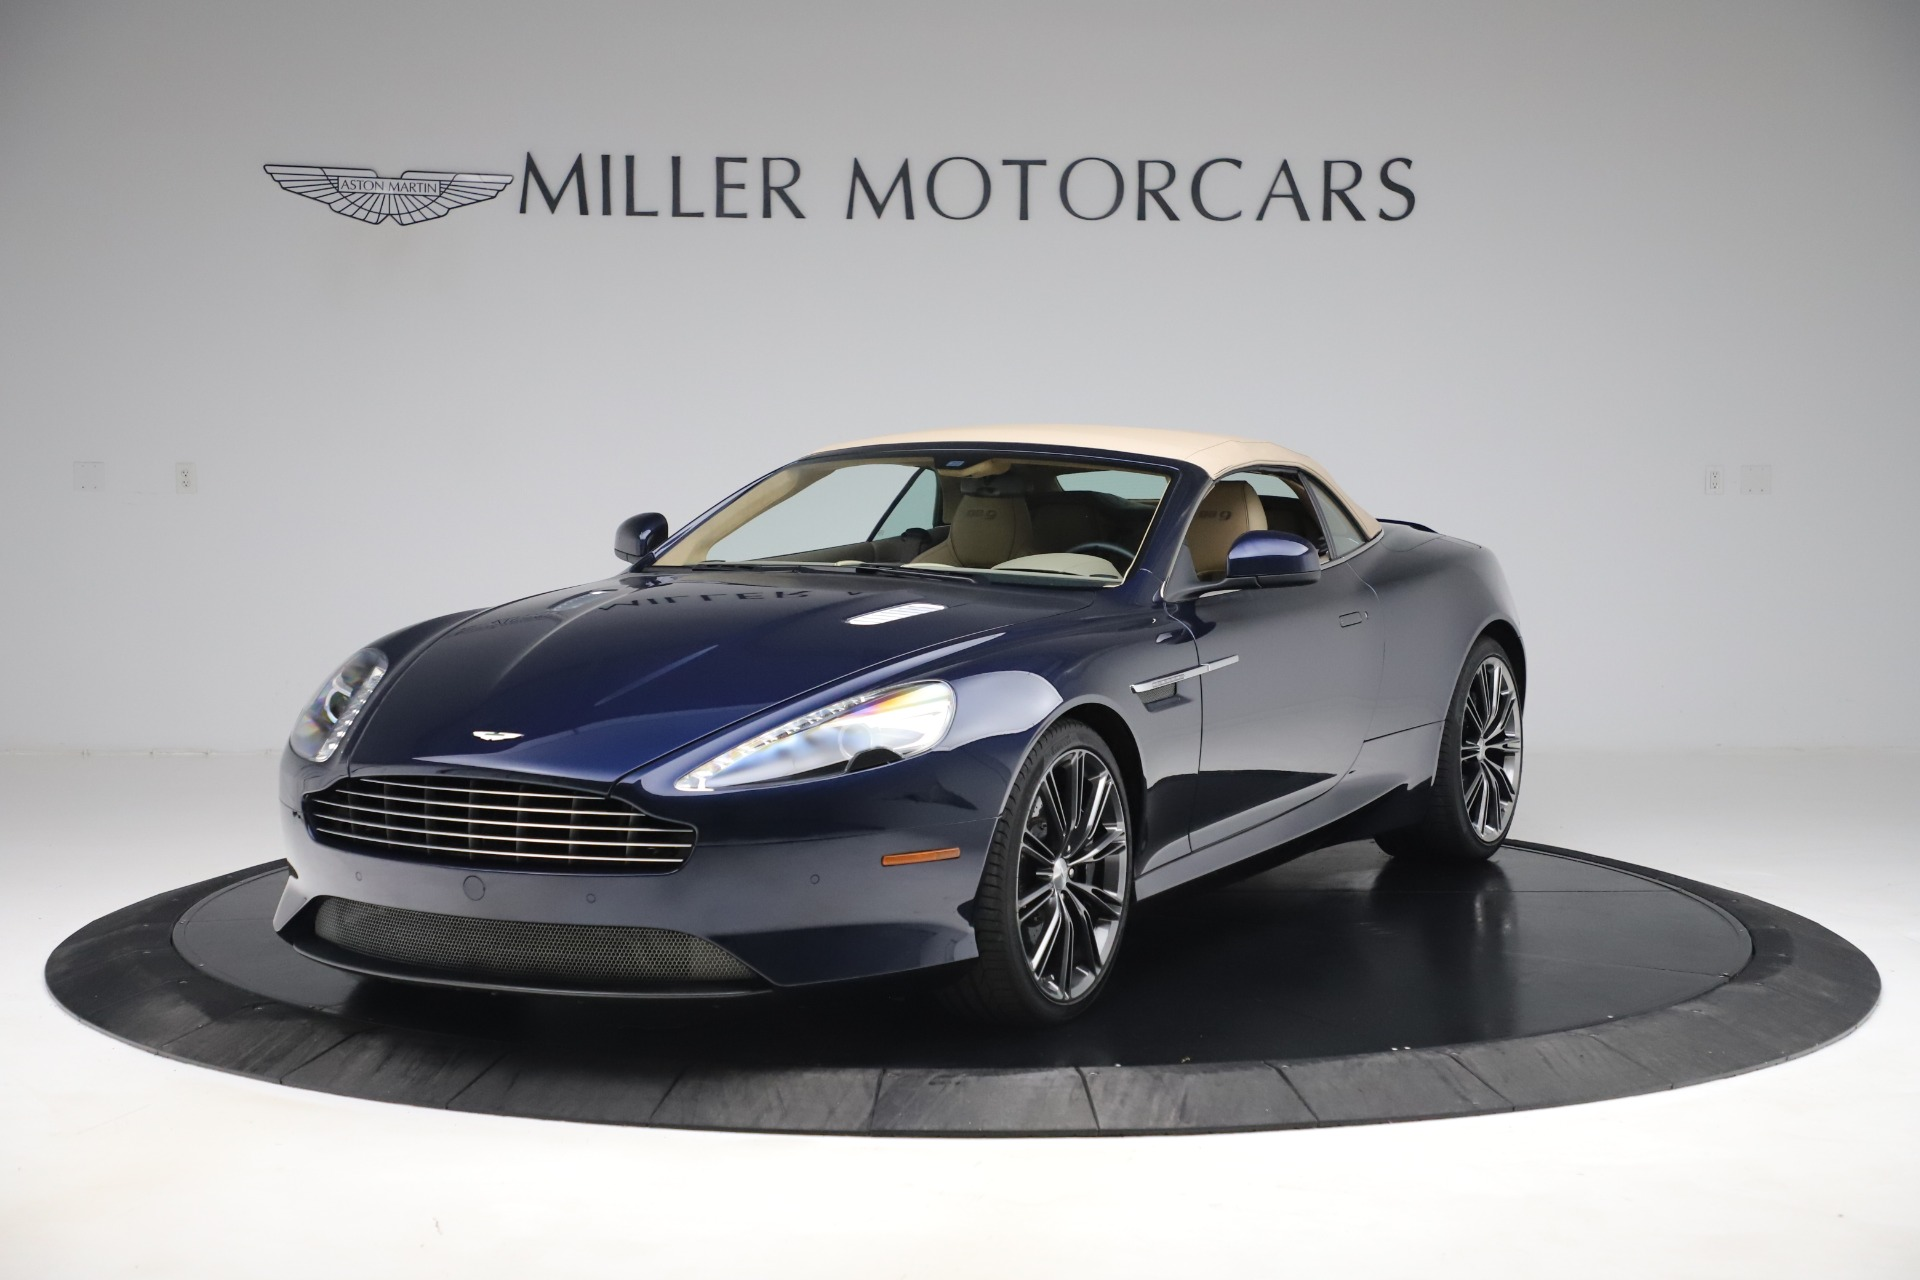 Used 2014 Aston Martin DB9 Volante For Sale In Westport, CT 3591_p13